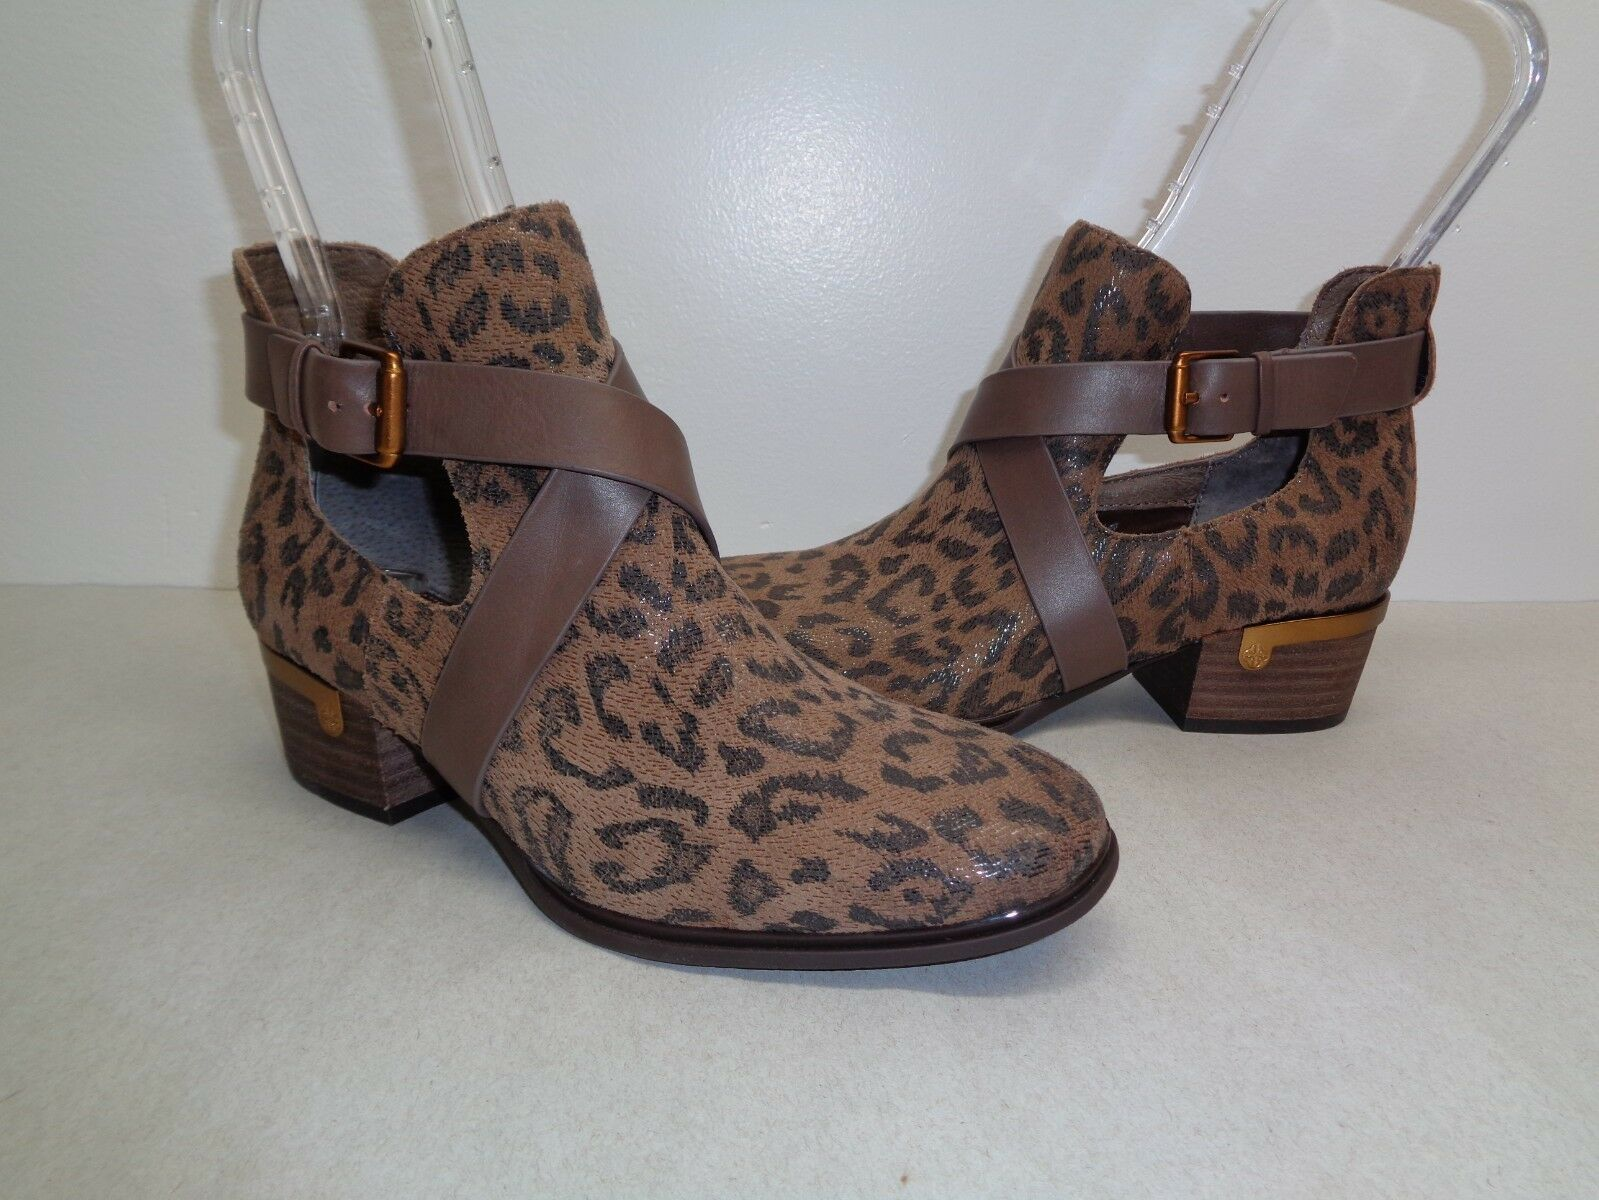 Isola Size Size Size 8 M DAVAN Desert Tan Leopard Suede Ankle Boots New Womens shoes afa2b9